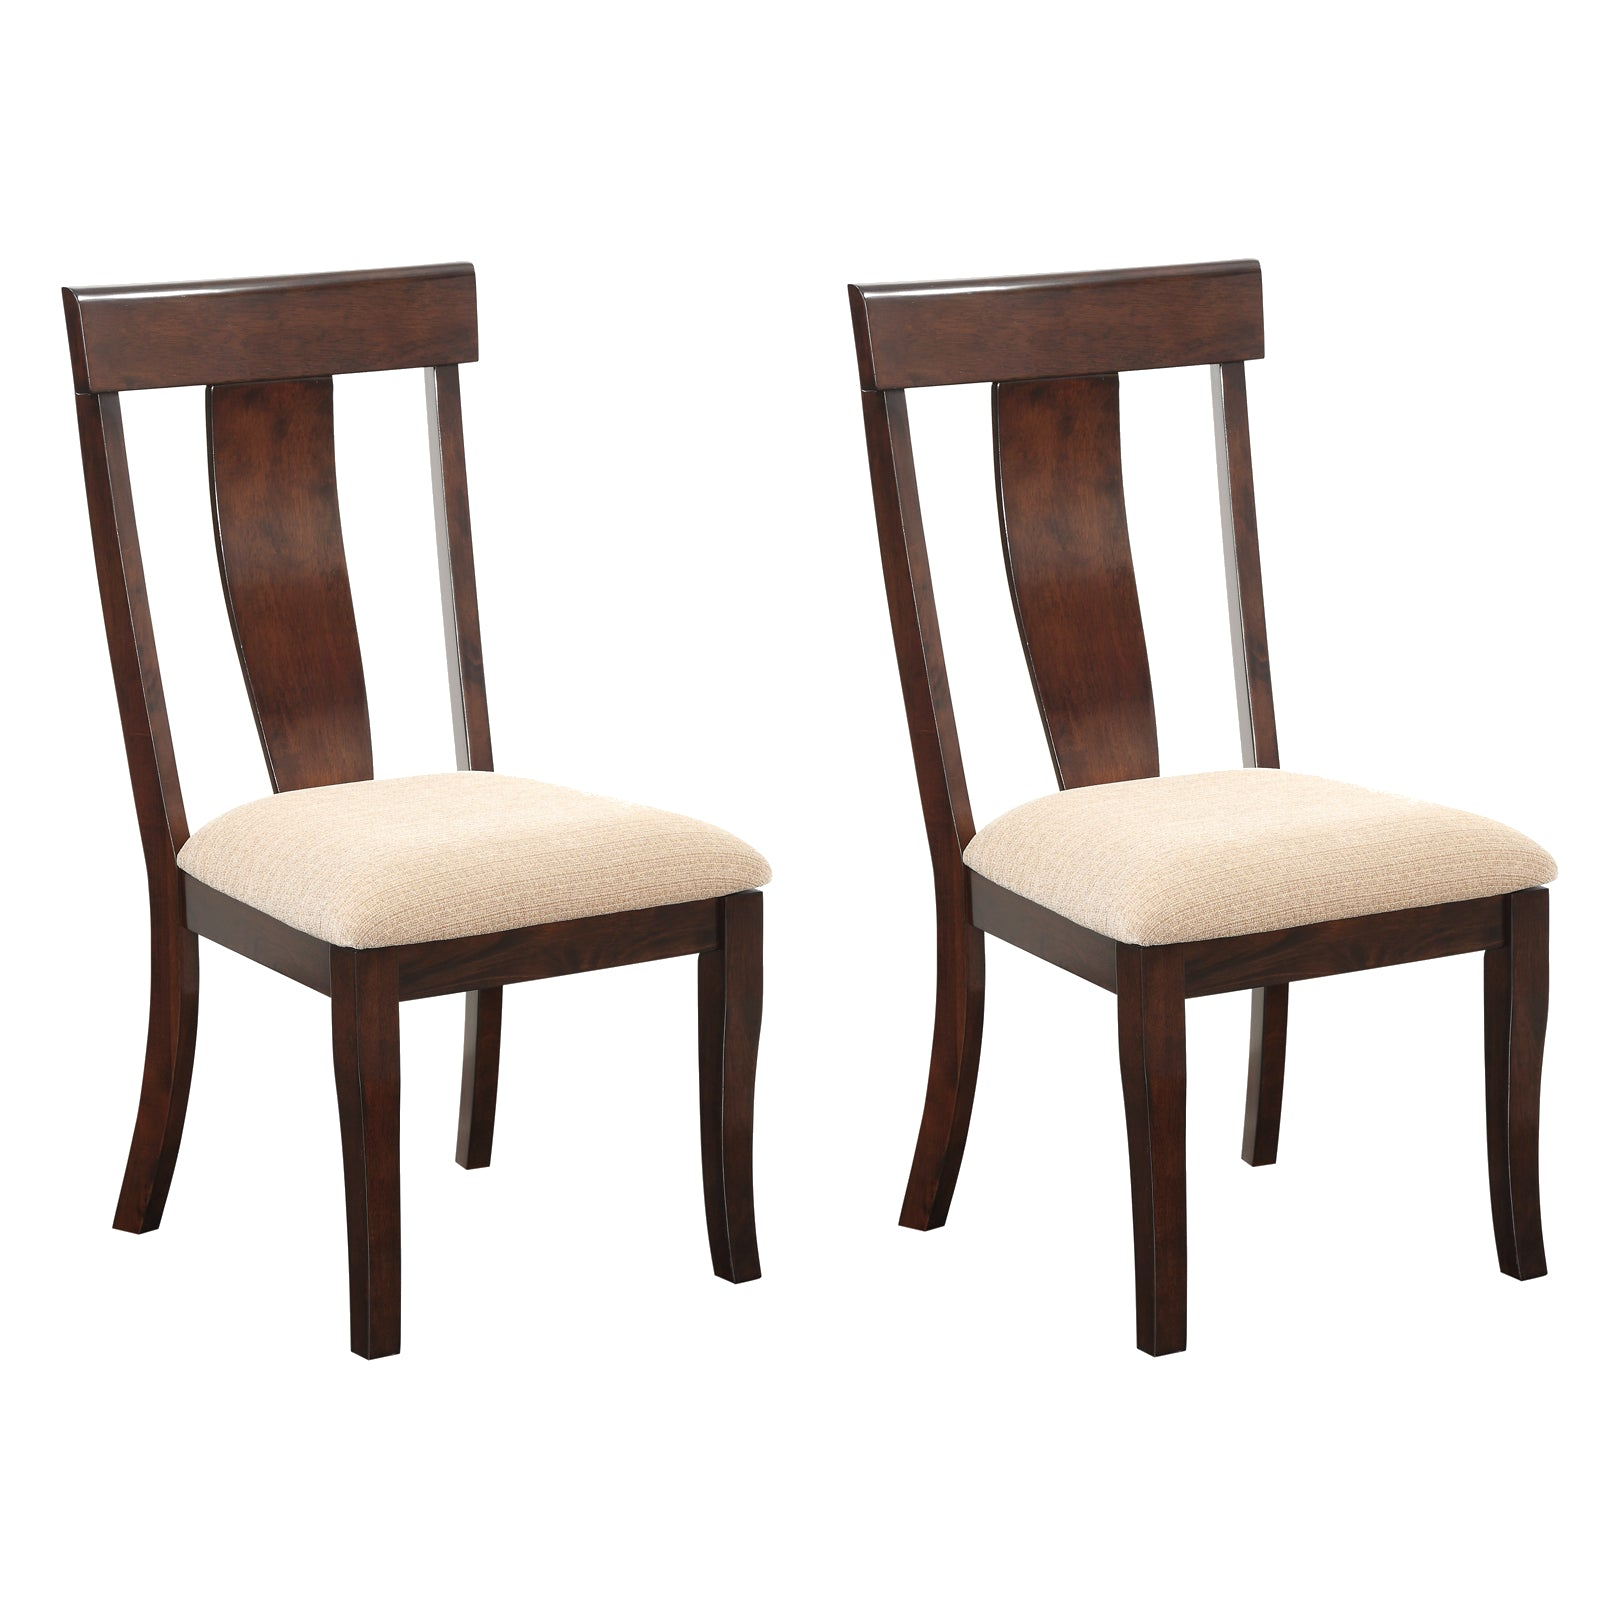 Fabulous Rowena Formal Dining Room Chairs Cherry Wood Cream White Gmtry Best Dining Table And Chair Ideas Images Gmtryco